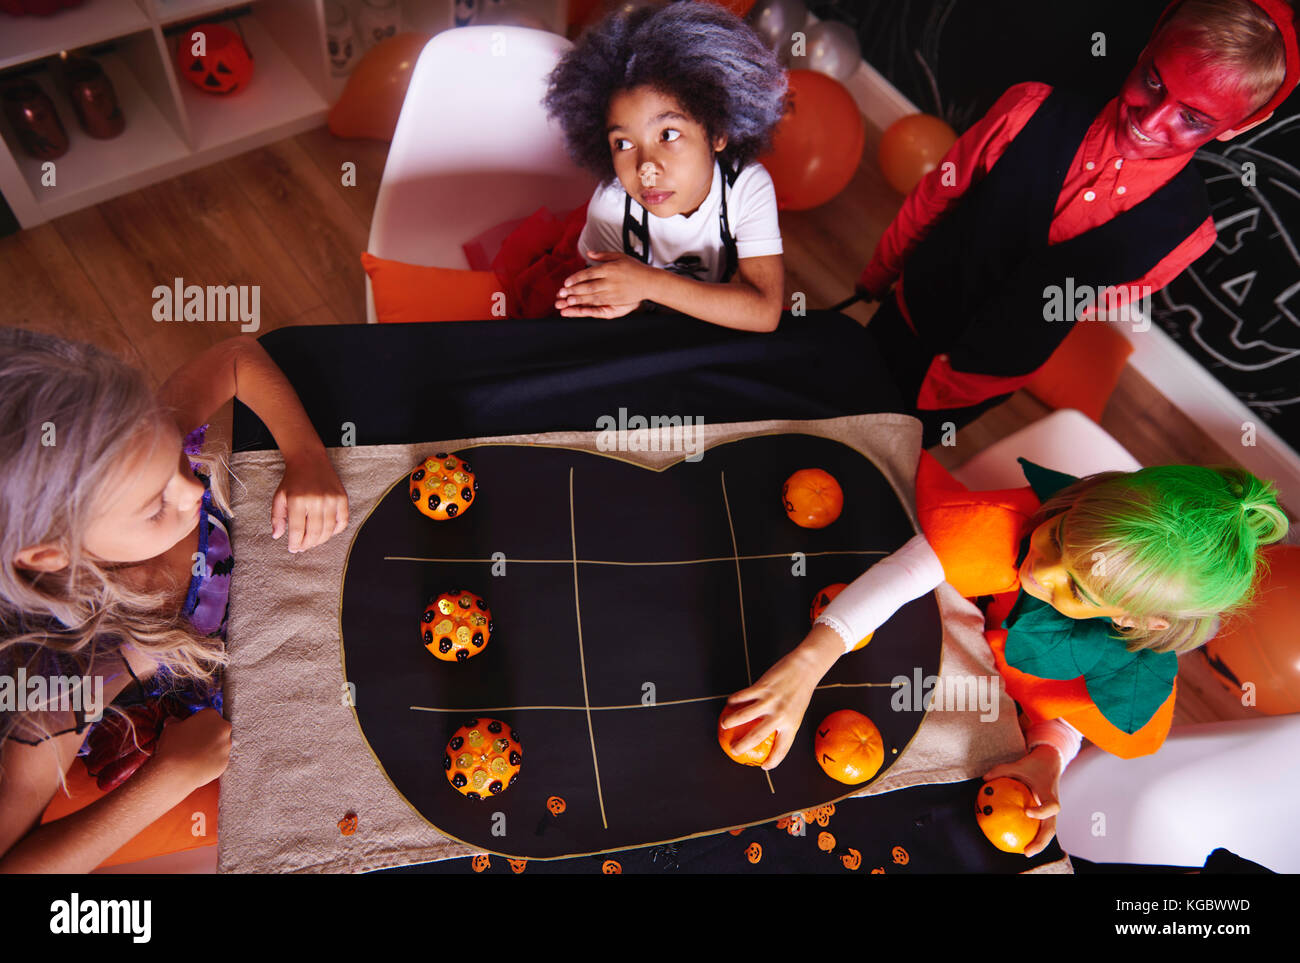 Kids spending time together while party game - Stock Image